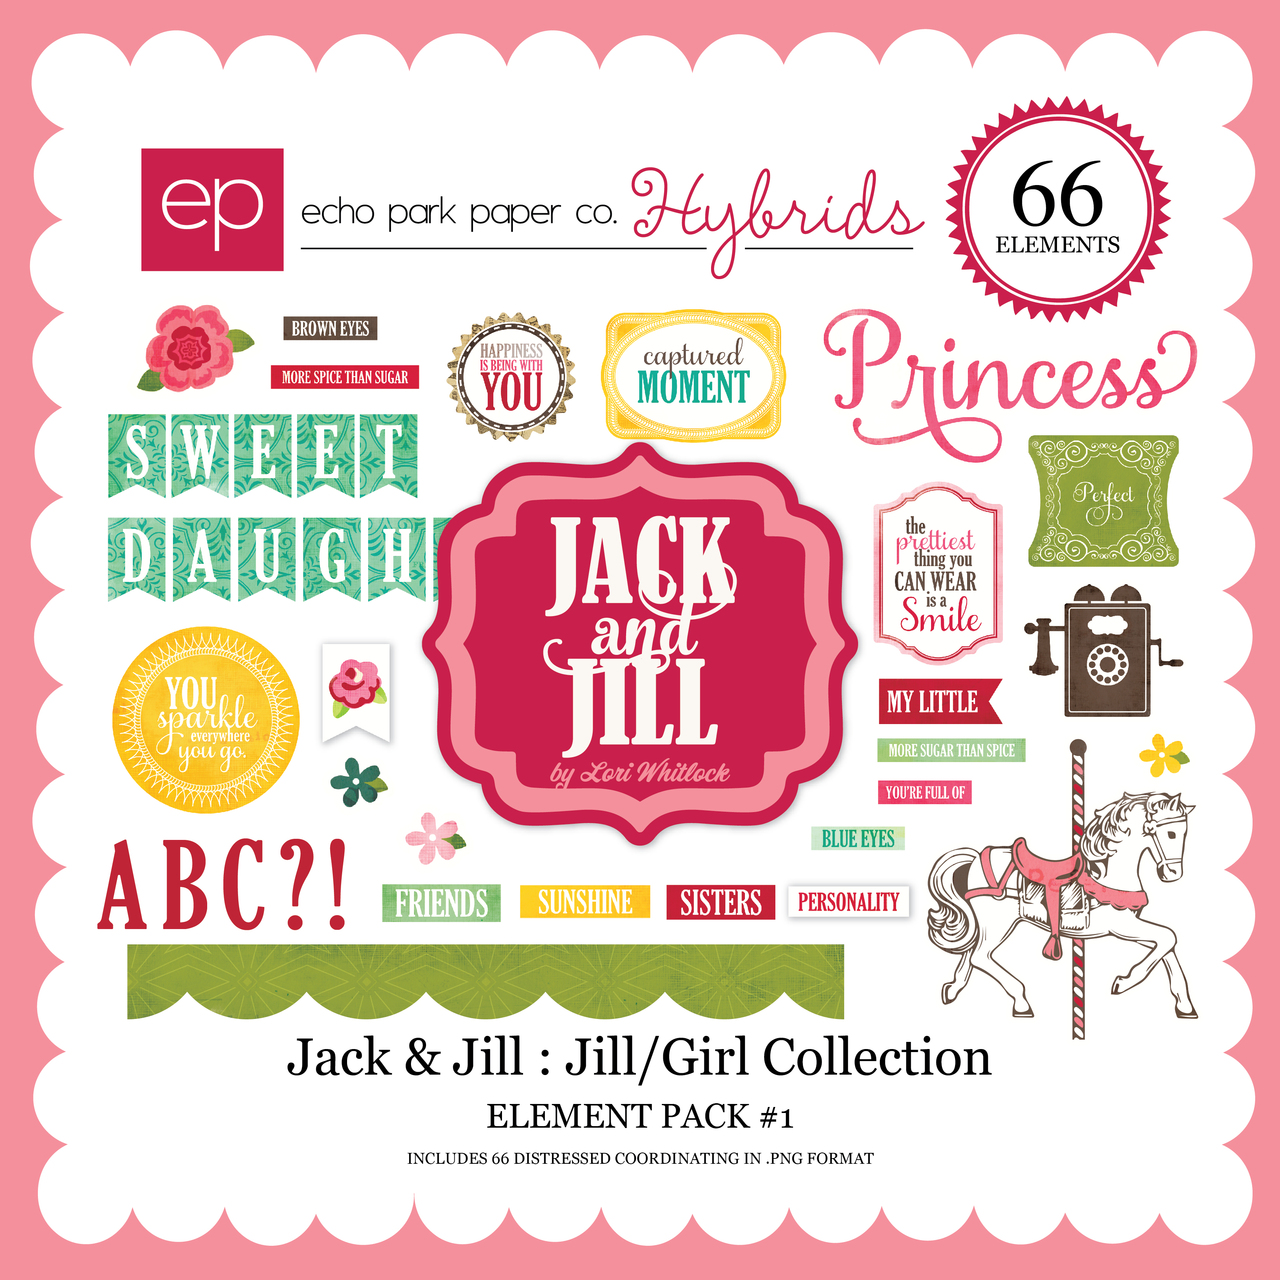 Jack & Jill: Jill/Girl Element Pack #1